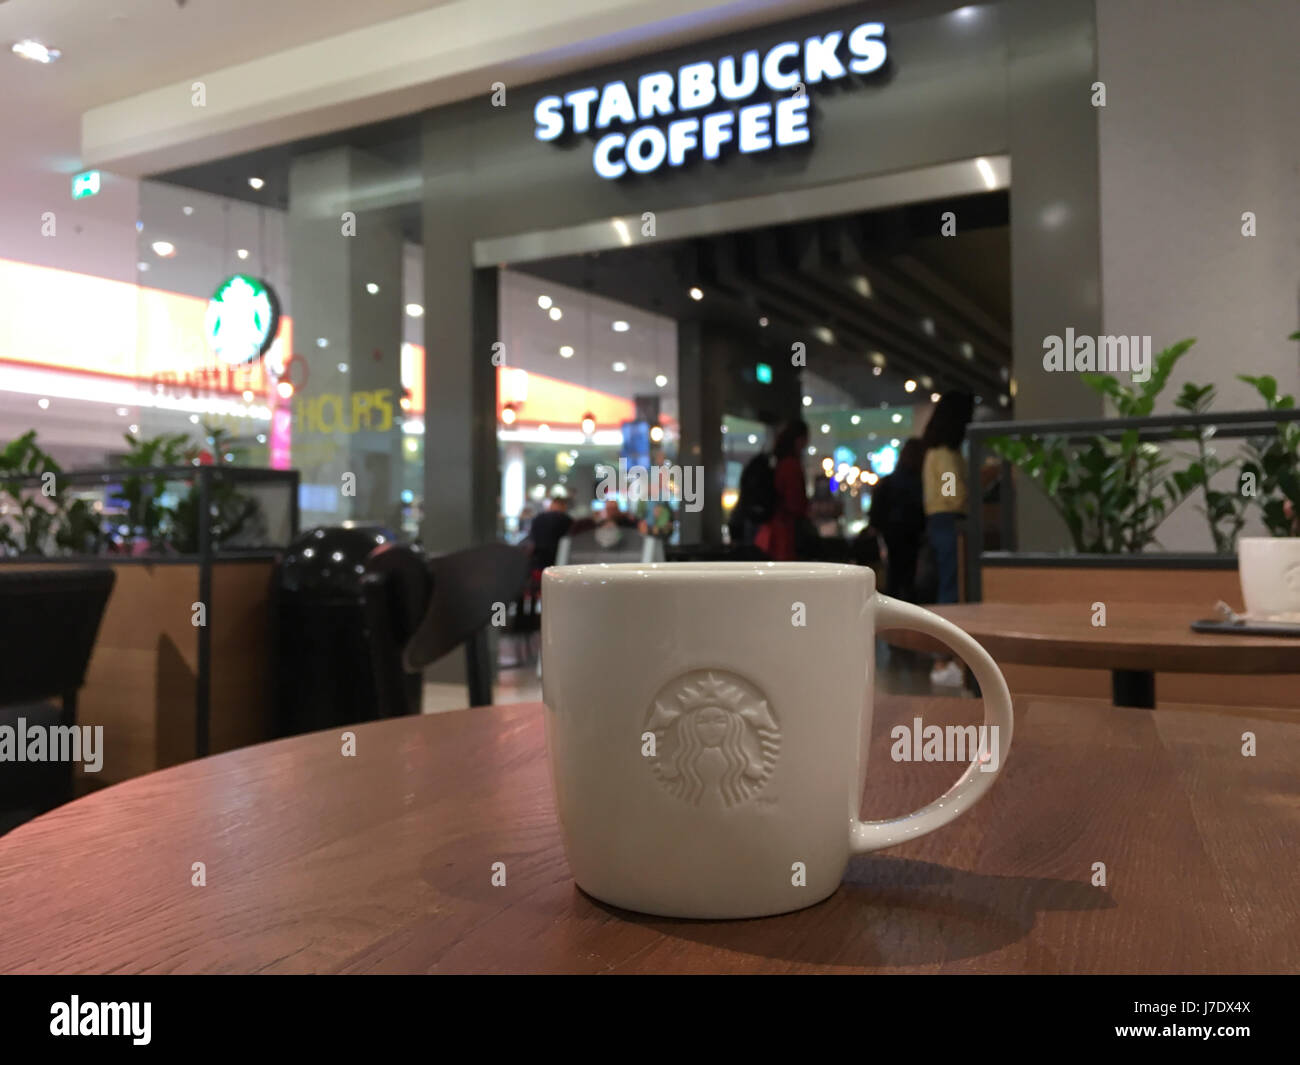 Krakow, Poland - May 21, 2017: Starbucks coffee sign and coffee tables in front of the coffeehouse entrance. Starbucks - Stock Image